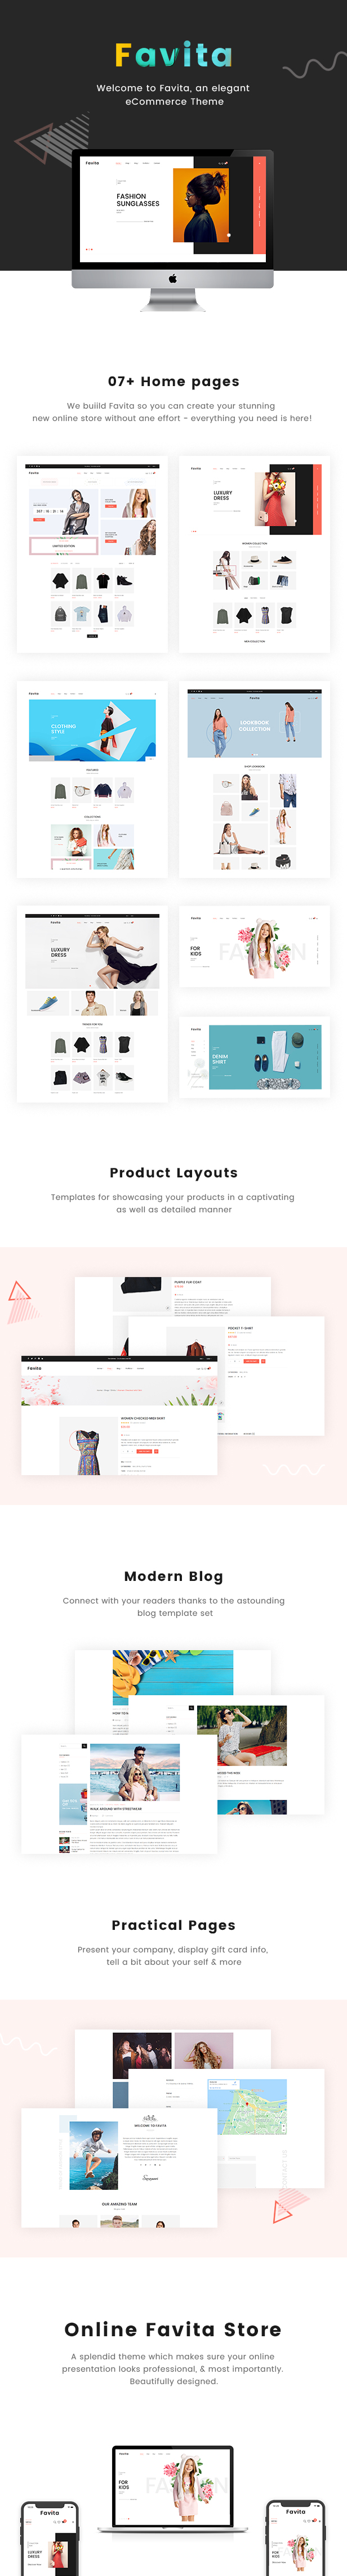 Favita - Minimal and Modern WooCommerce Fashion Theme - 1